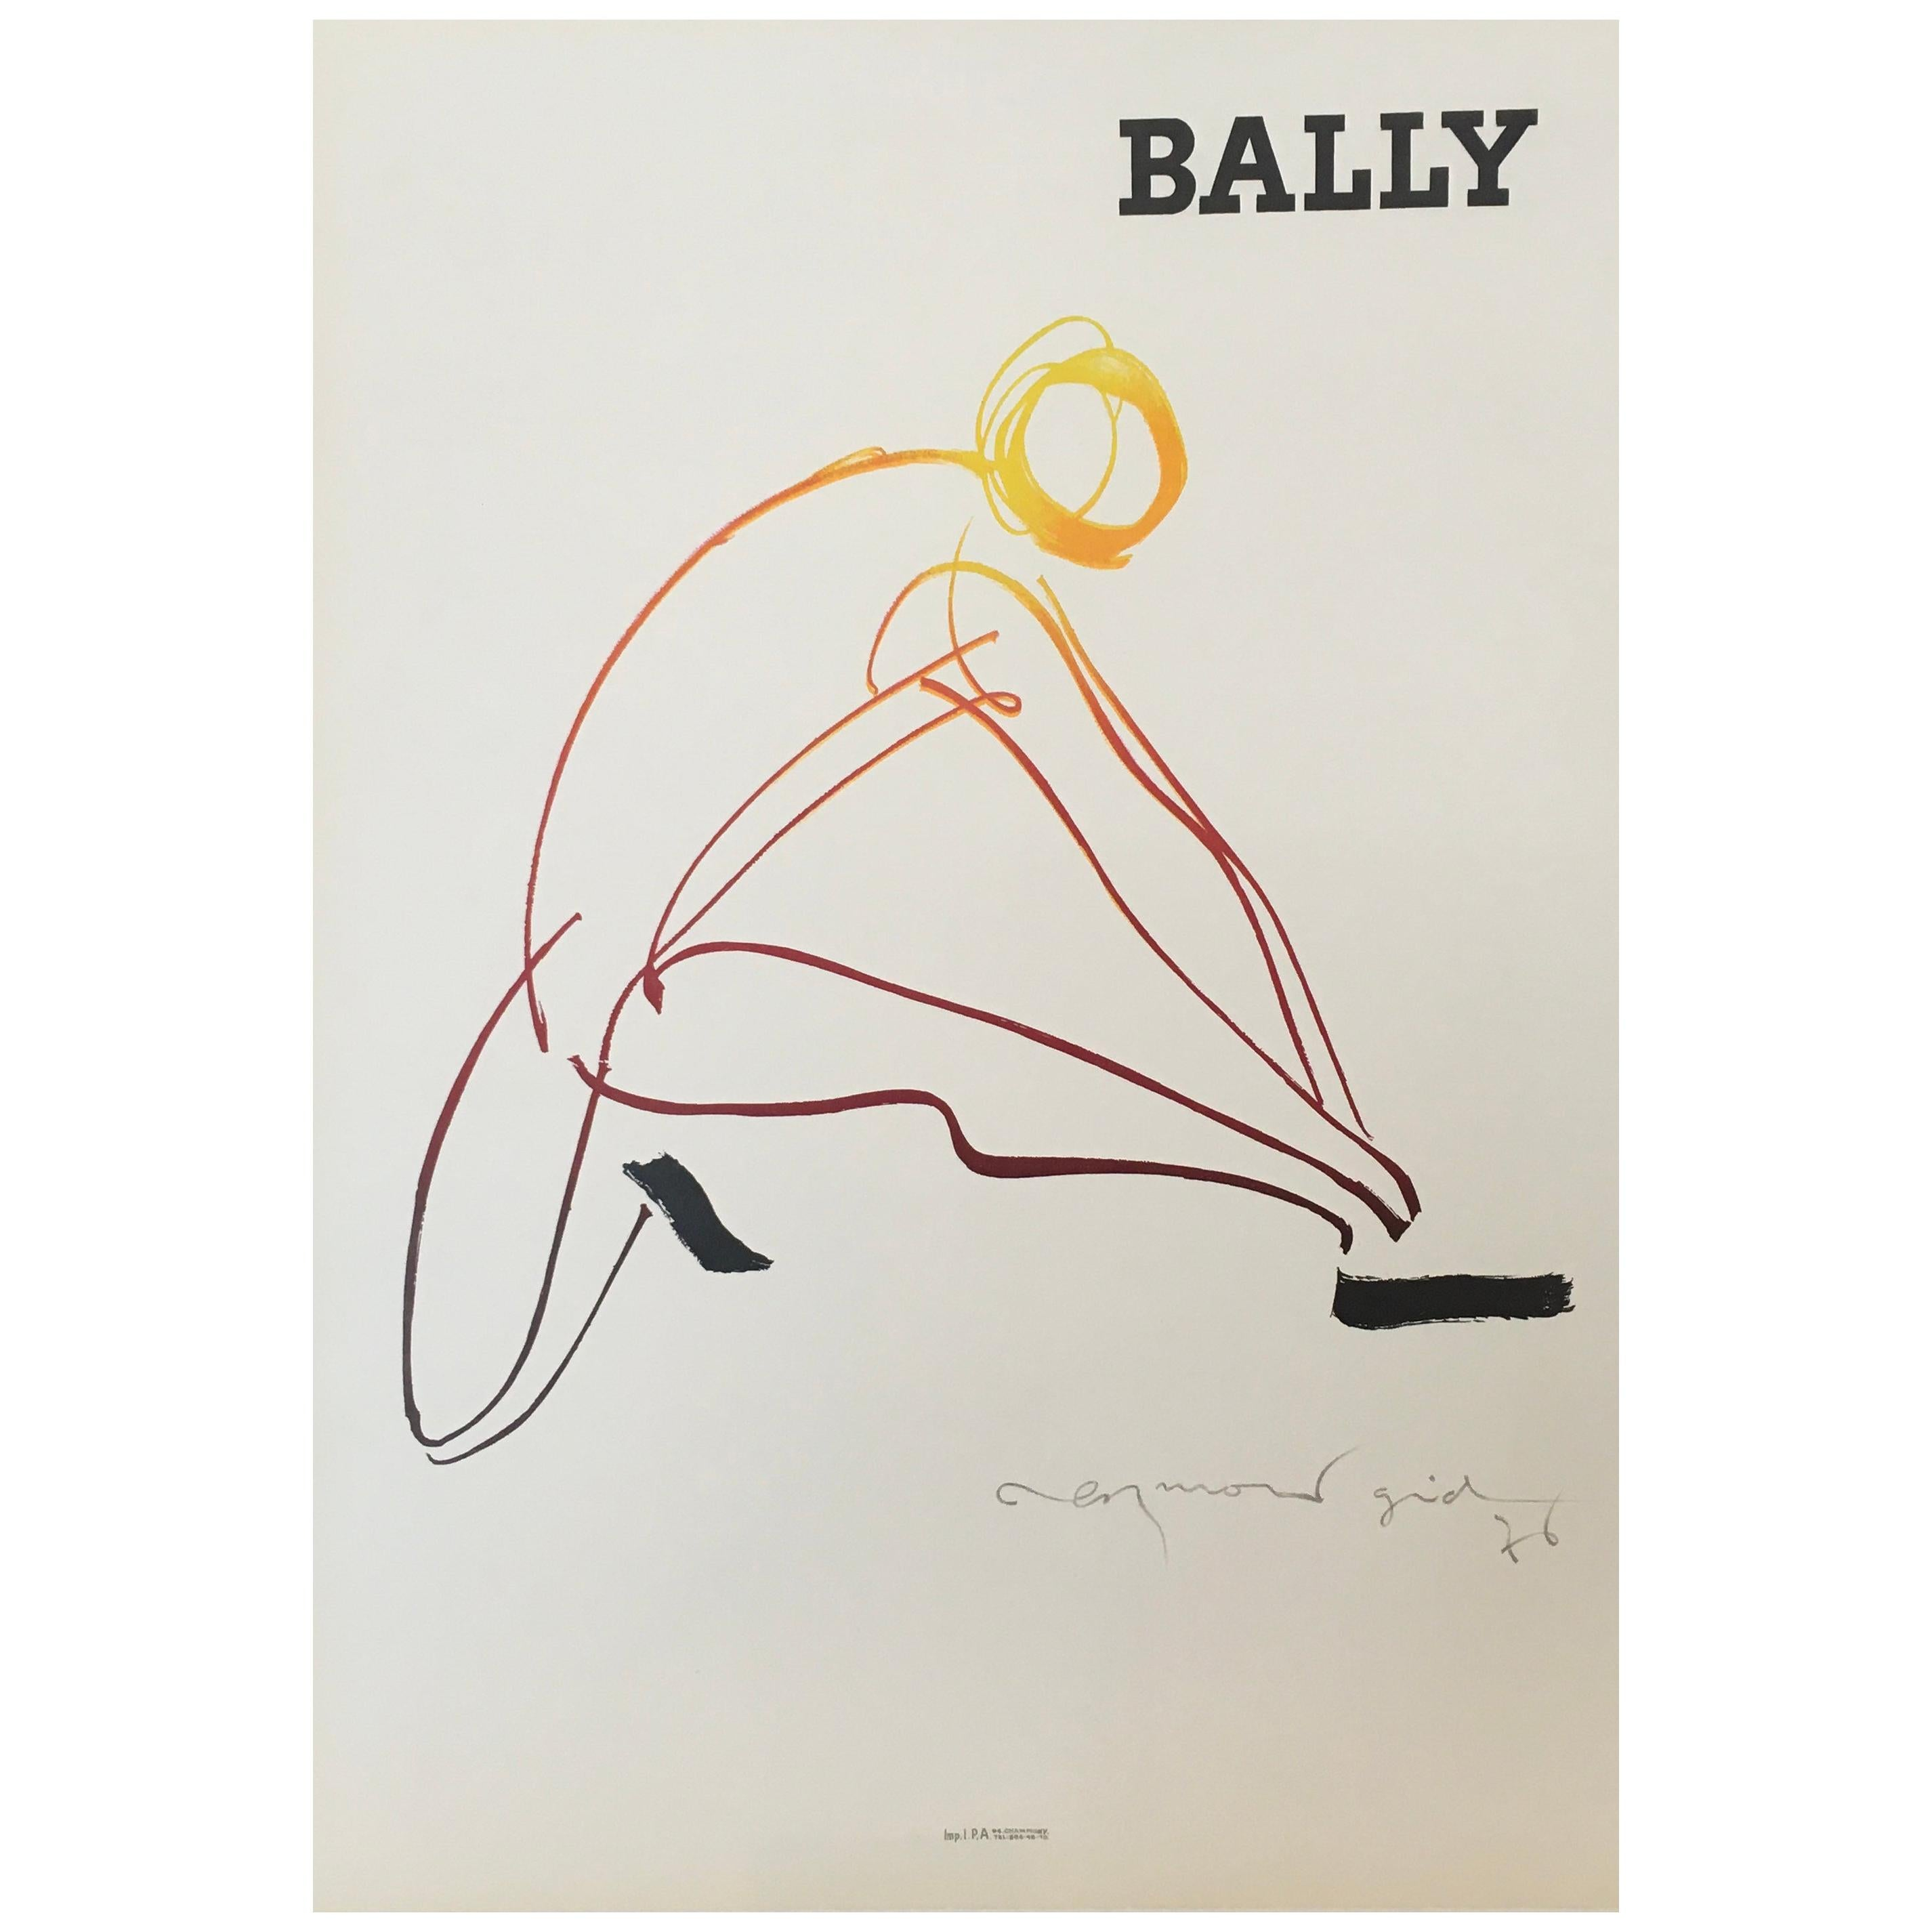 Bally Gid Homme, Small Format, Original Vintage Poster, 1976